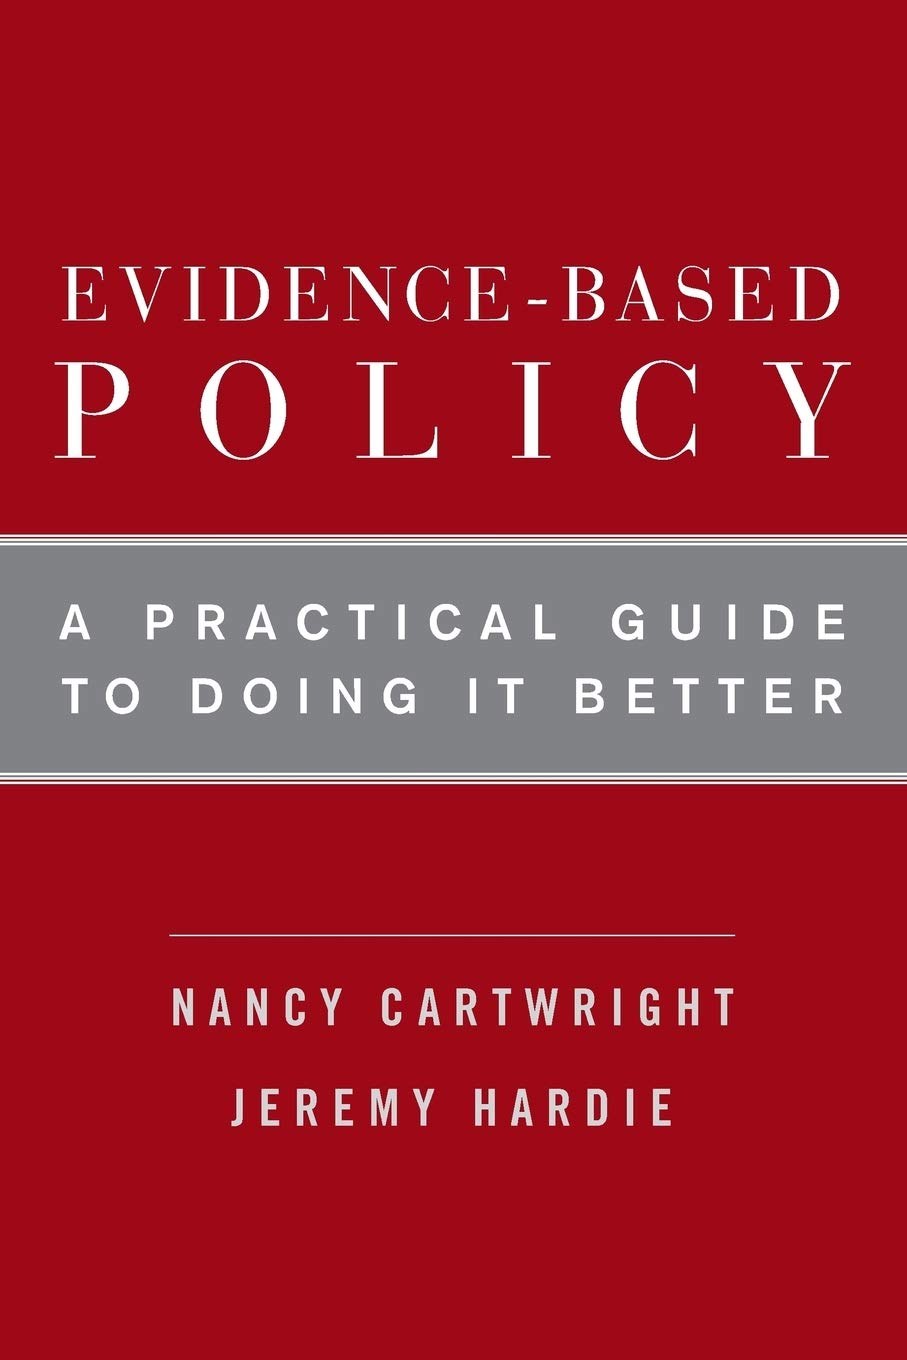 Evidence-Based Policy: A Practical Guide To Doing It Better: Amazon.co.uk:  Cartwright, Nancy, Hardie, Jeremy: 9780199841622: Books